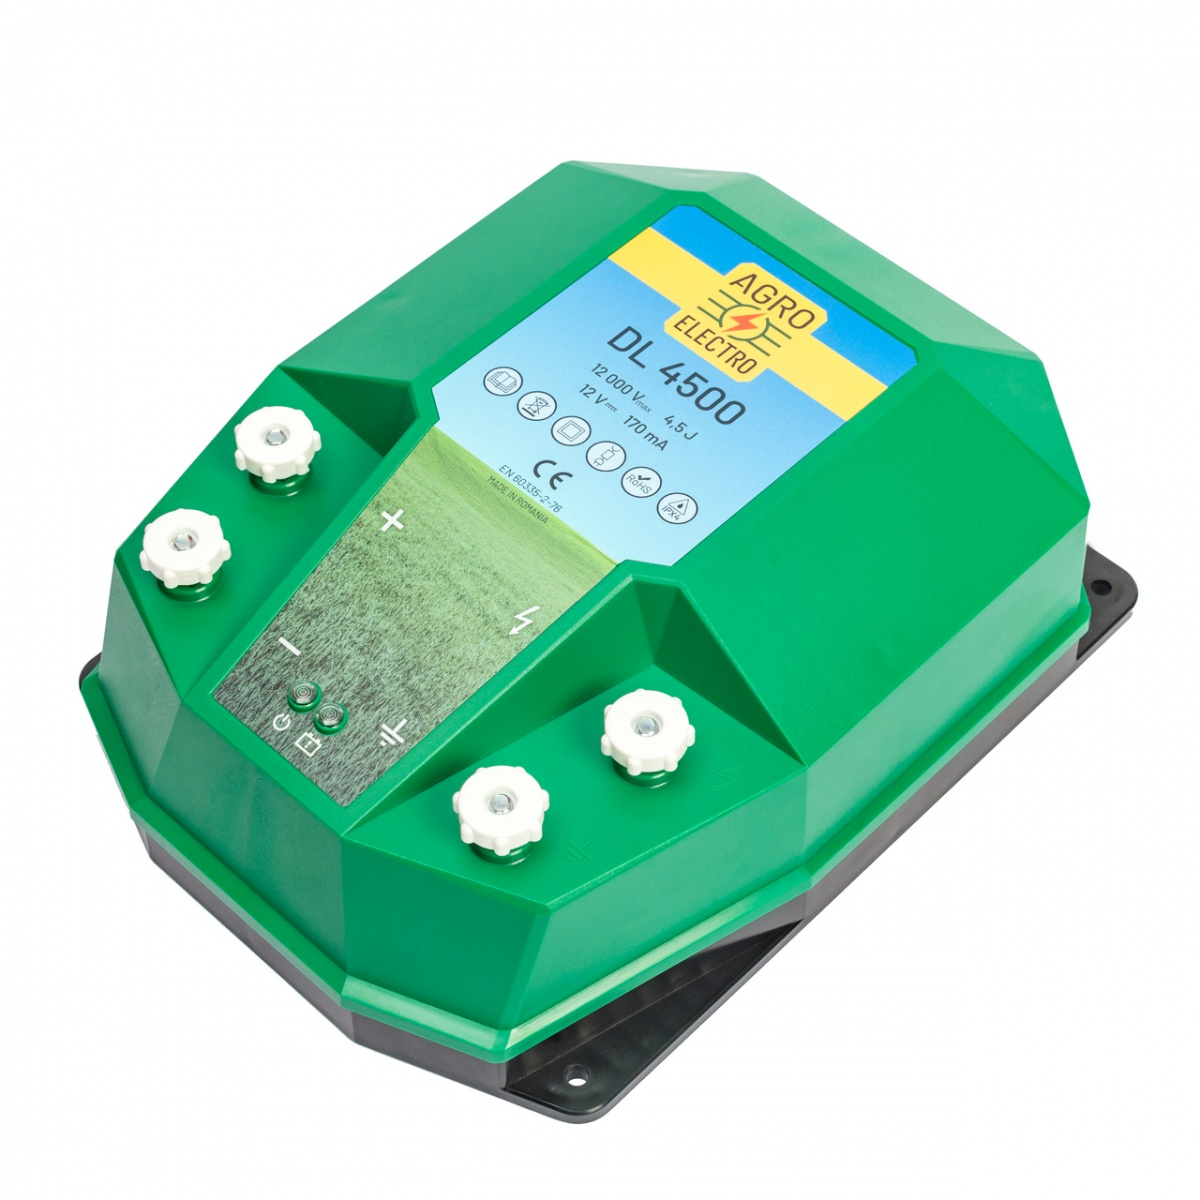 Aparat gard electric DL 4500, 12 V, 4,5 Joule